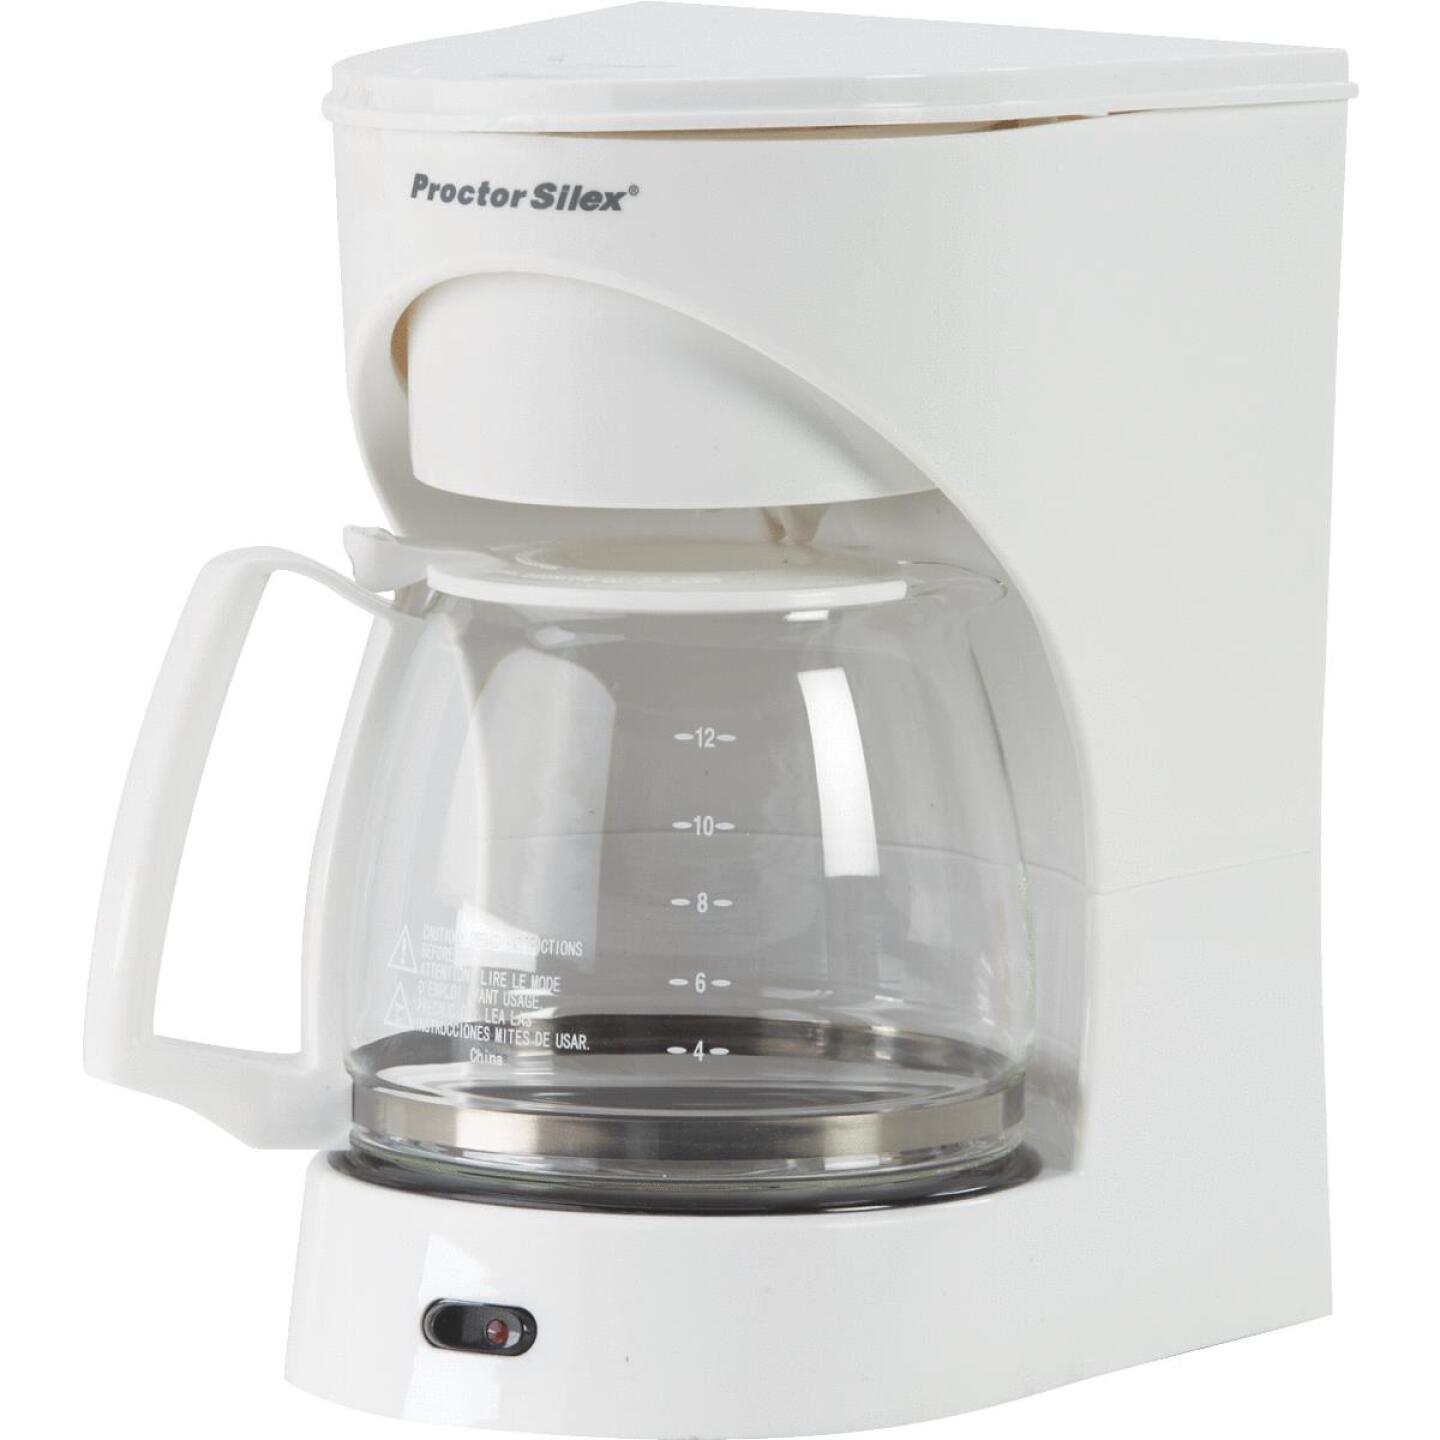 Proctor-Silex 12 Cup White Coffee Maker Image 1